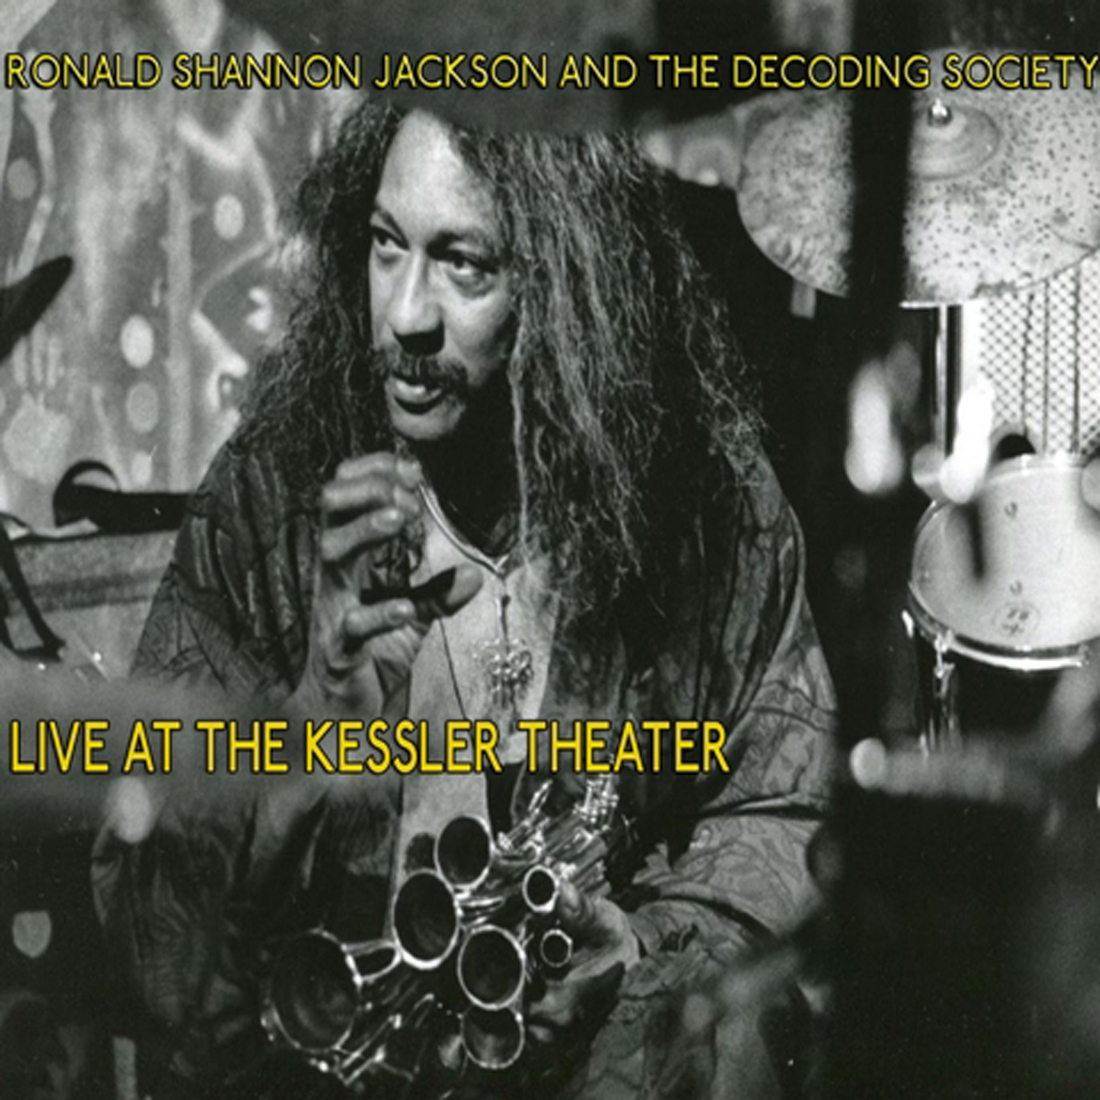 A recording of Ronald Shannon Jackson's last live performance has just been released, and Live at The Kessler Theater is a fitting tribute.